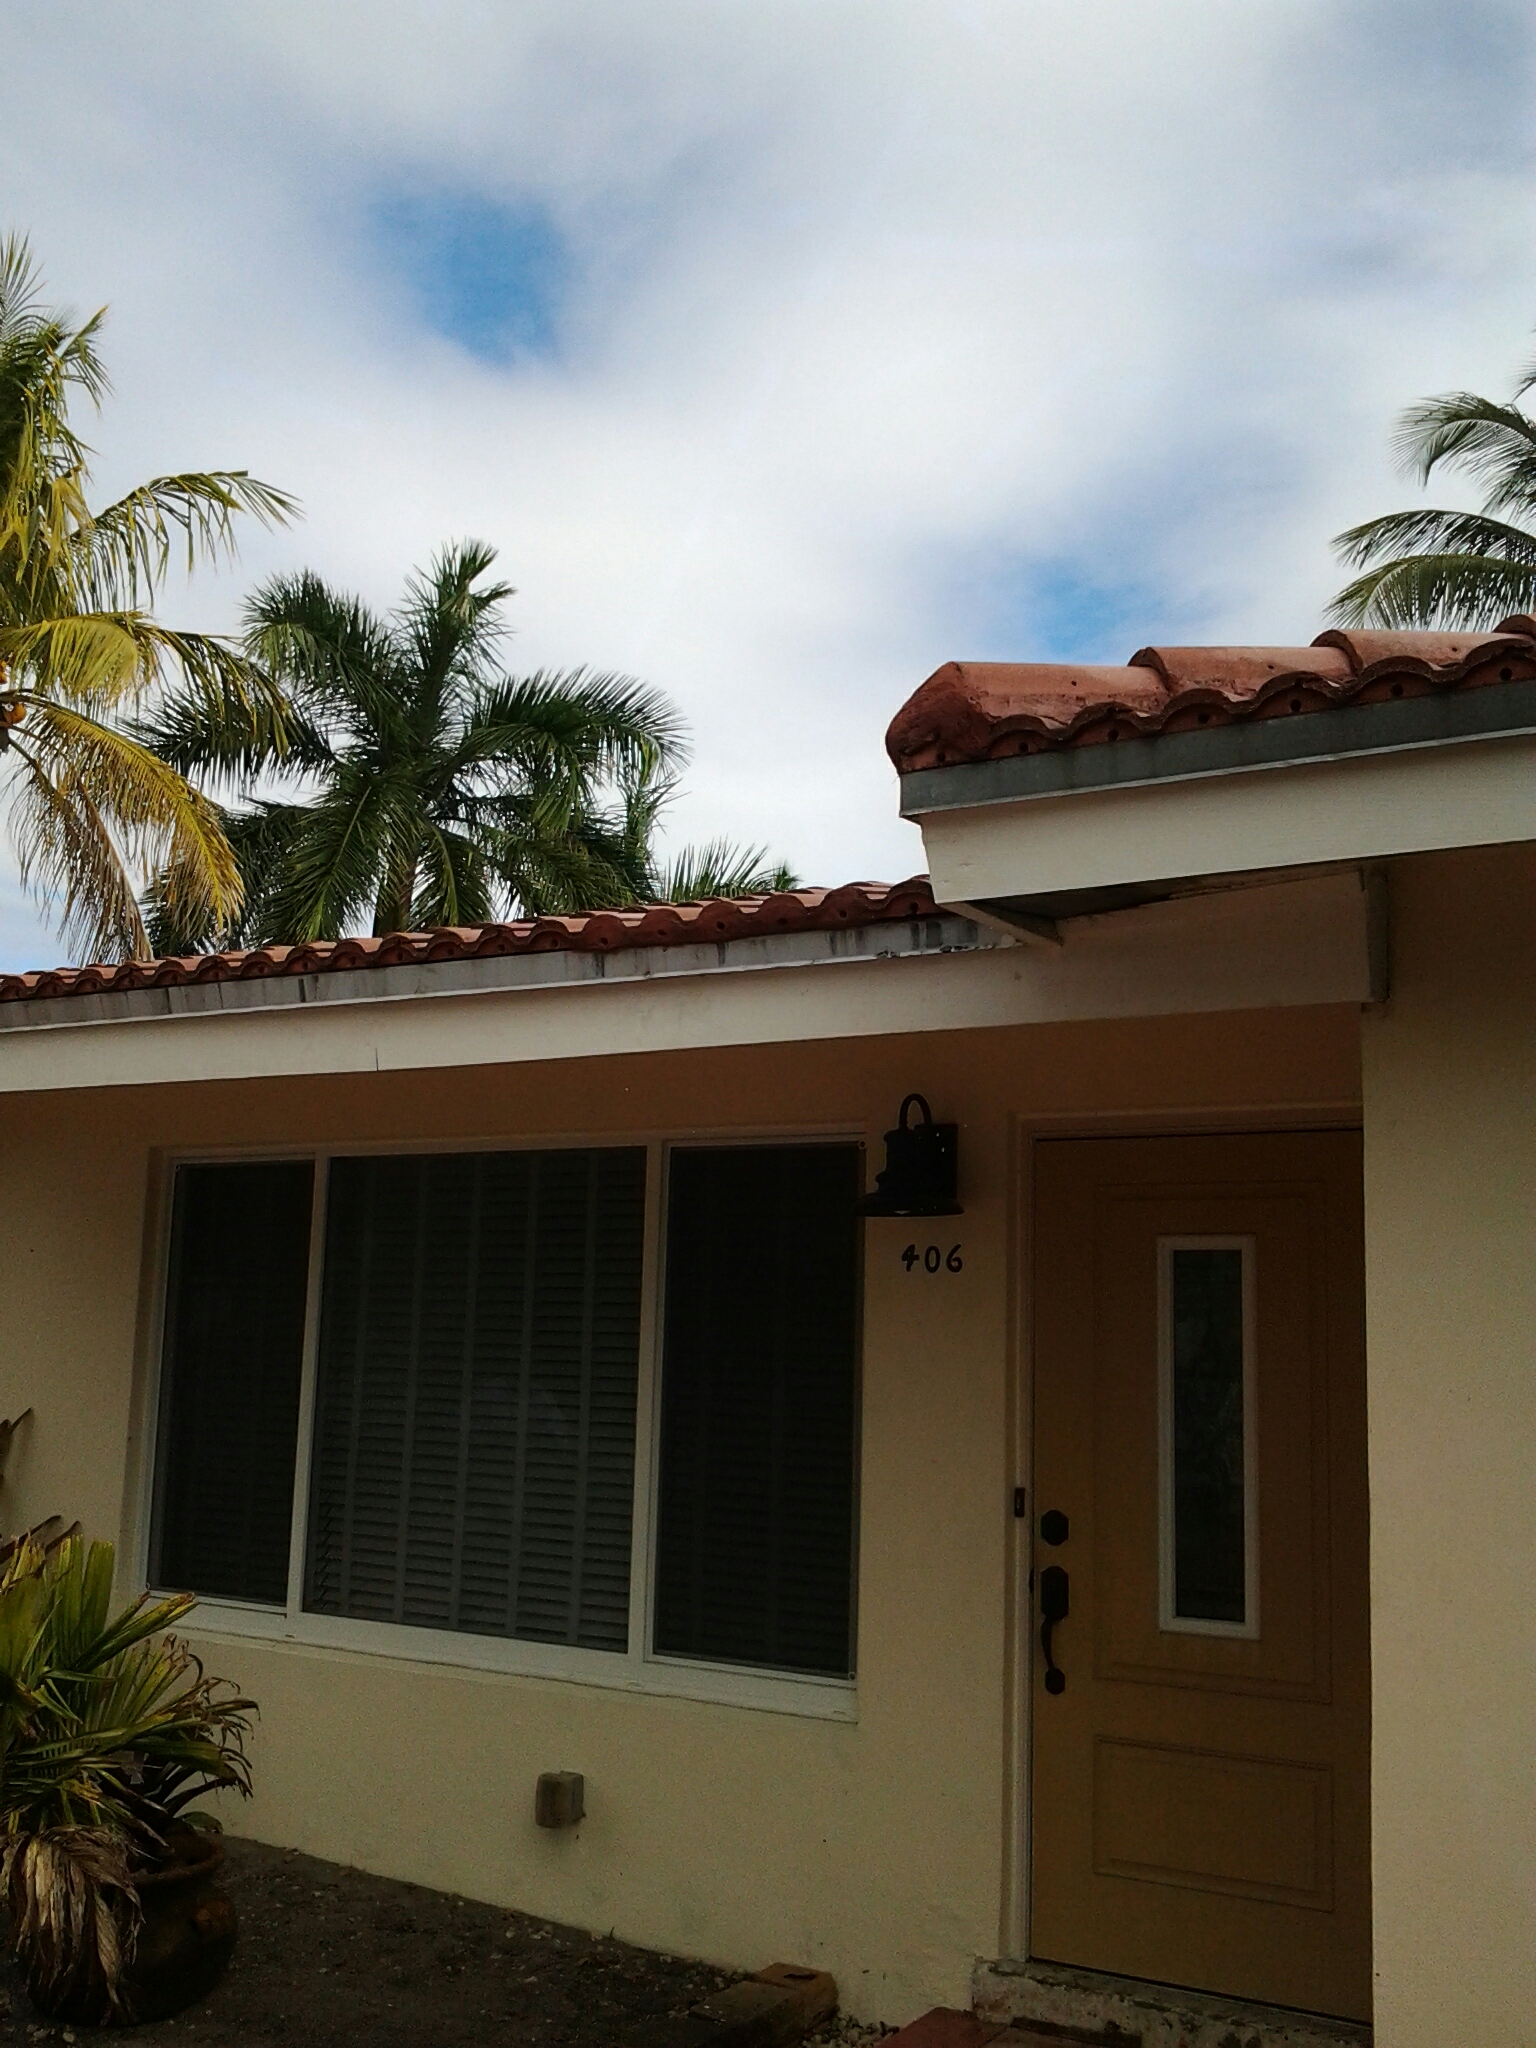 Fort Lauderdale, FL - Pressure clean and roof a cide roof